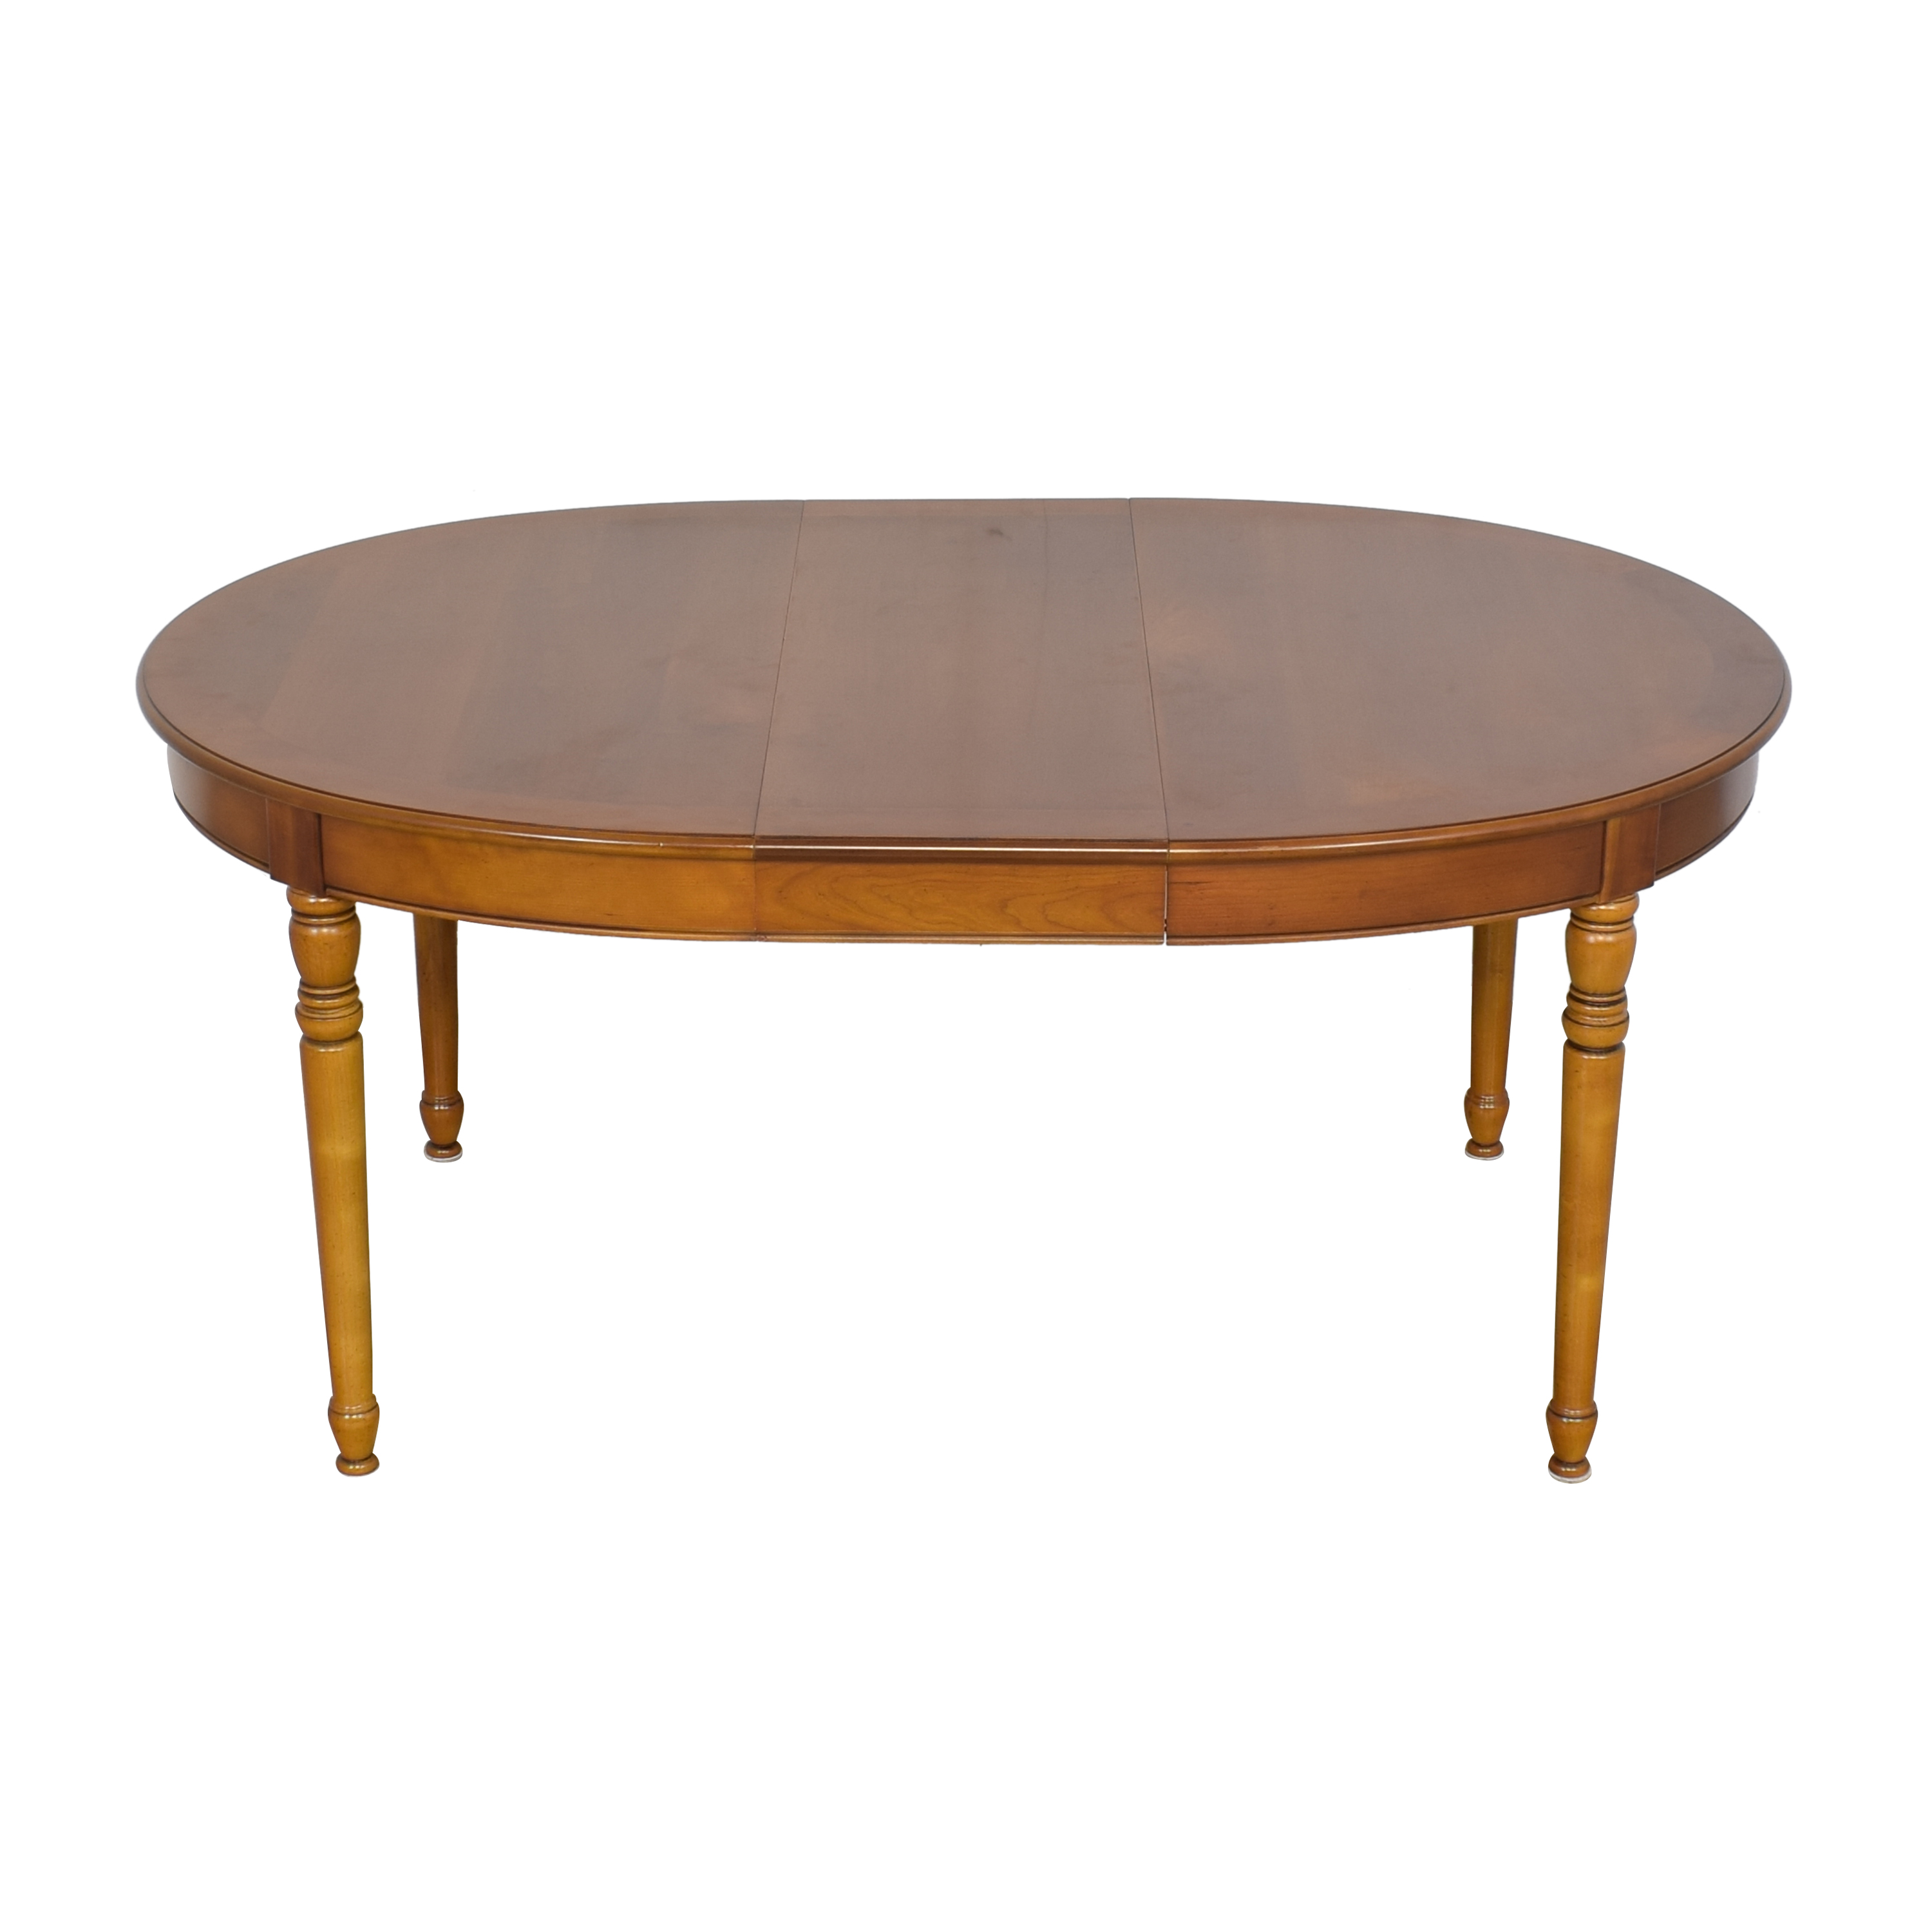 Pfister Extendable Round Dining Table / Tables